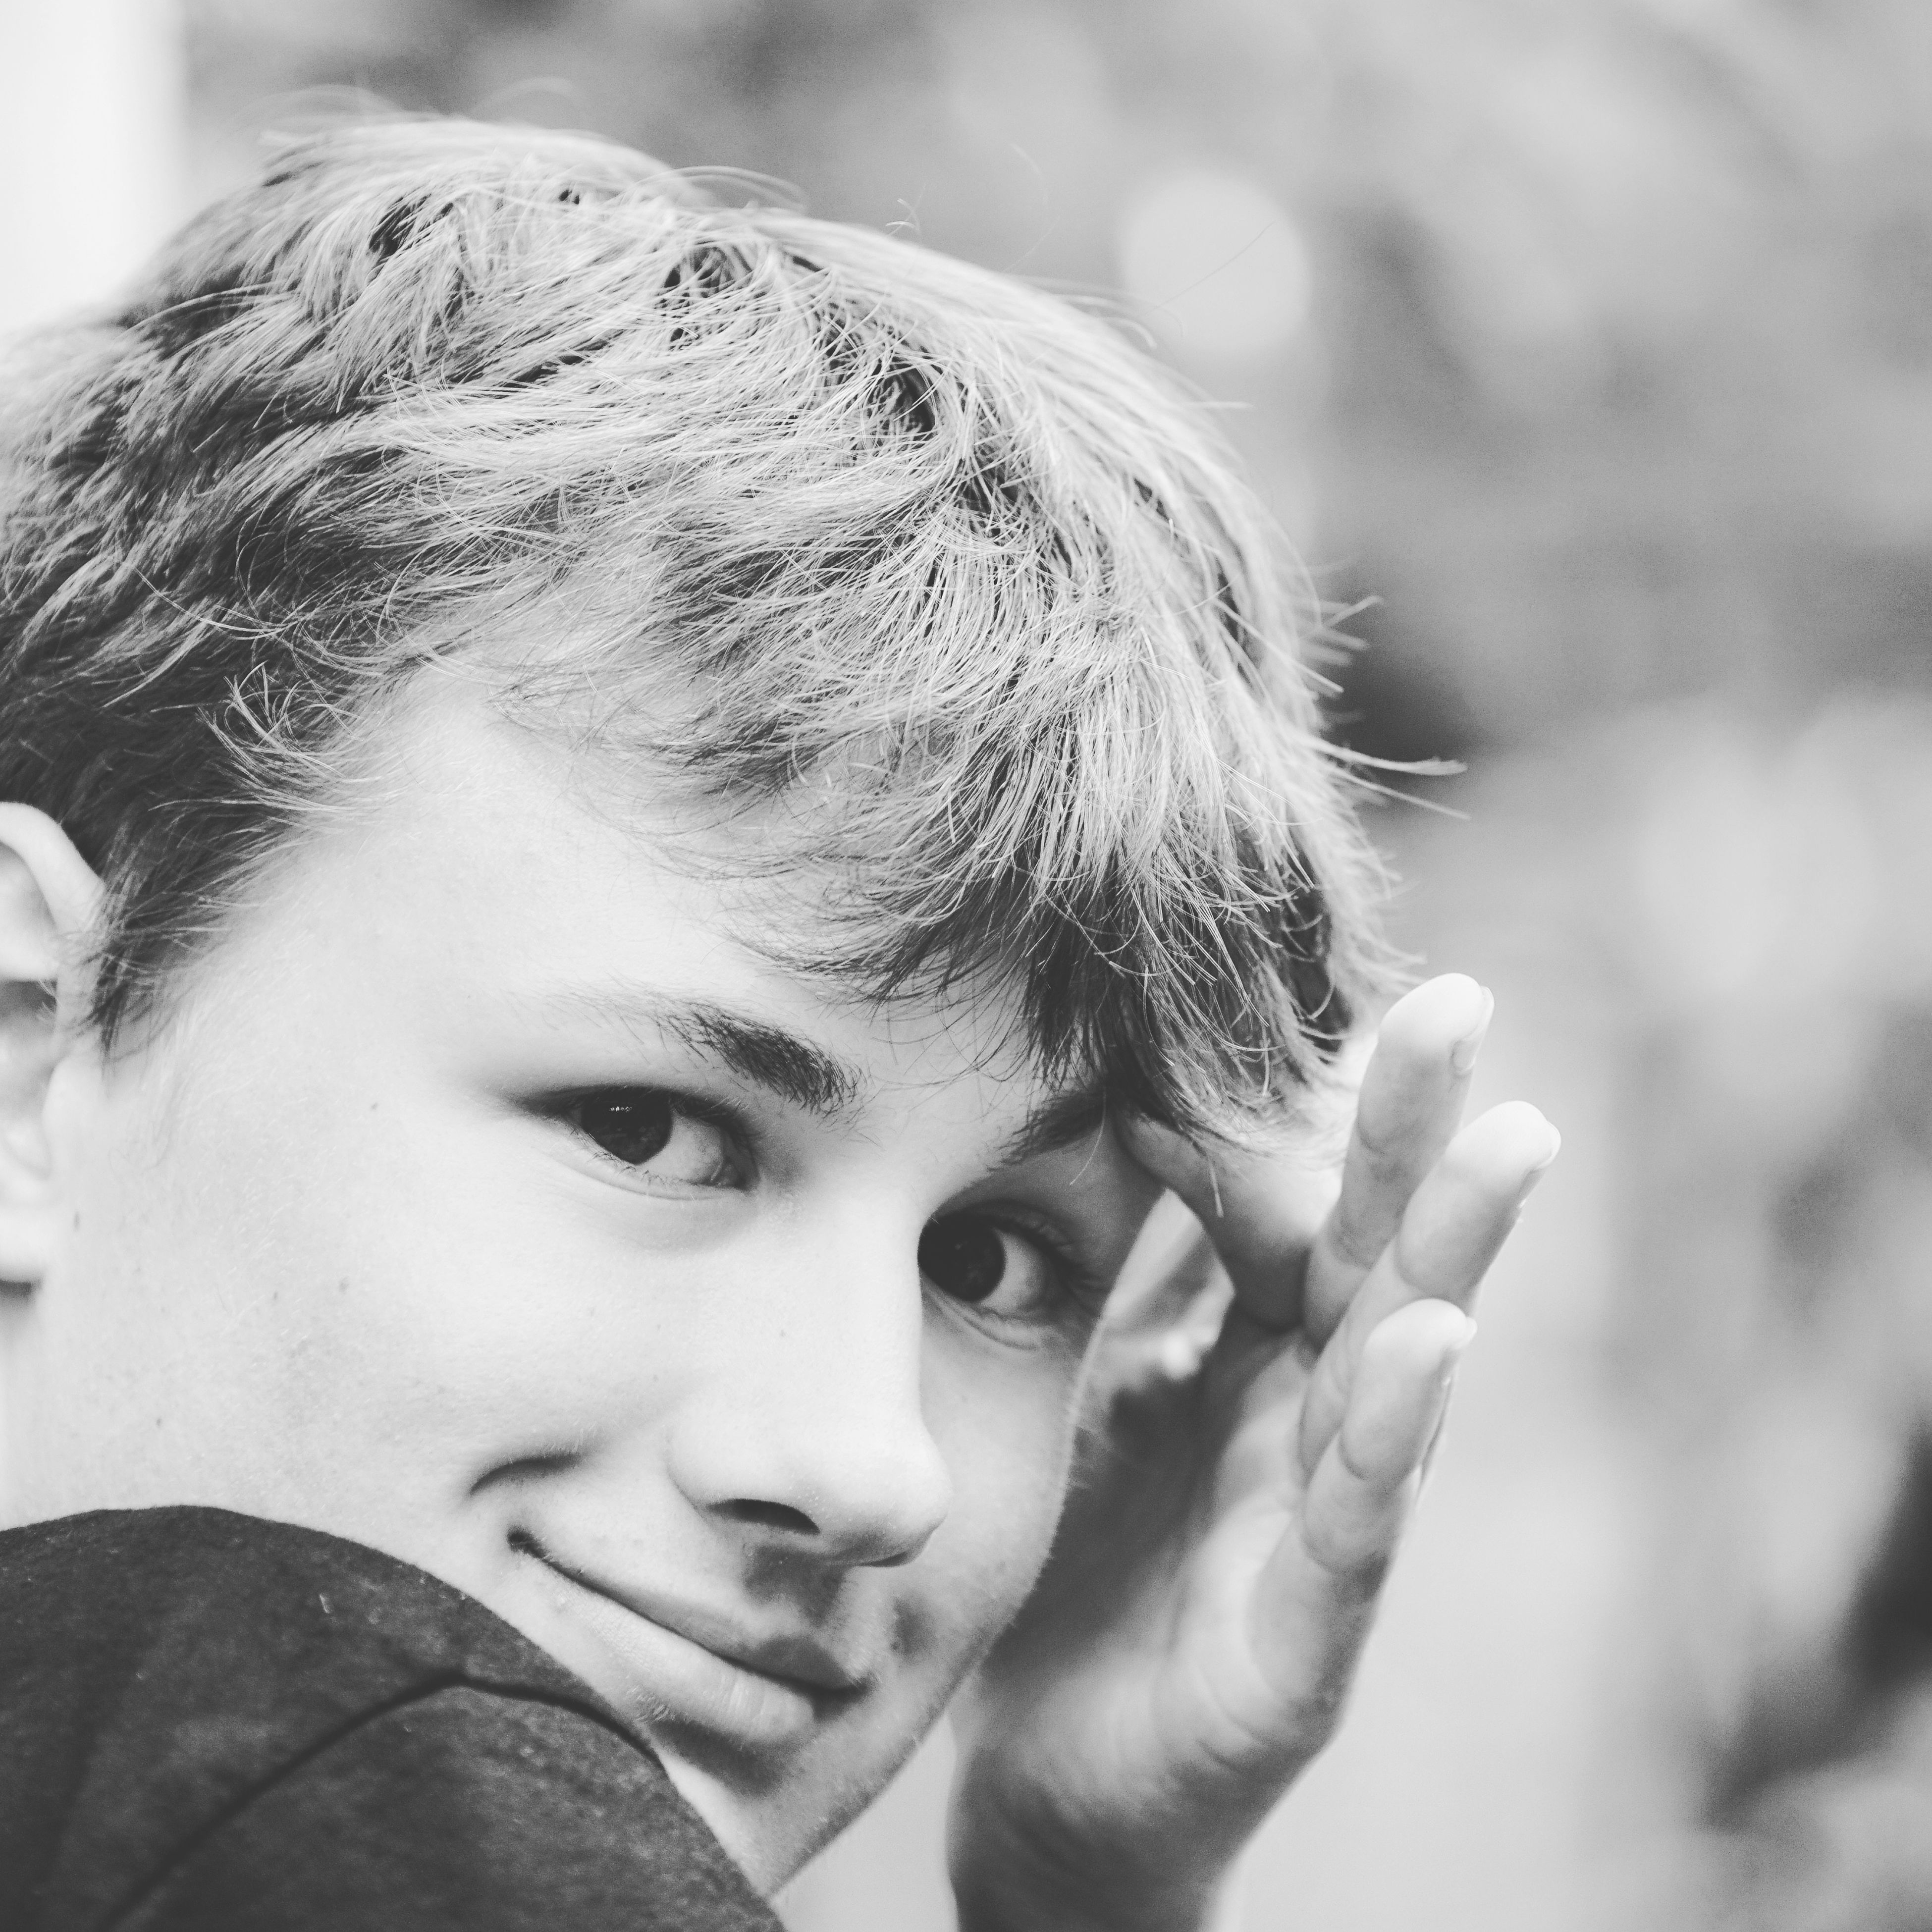 one person, childhood, real people, focus on foreground, headshot, close-up, boys, elementary age, portrait, lifestyles, day, looking at camera, outdoors, people